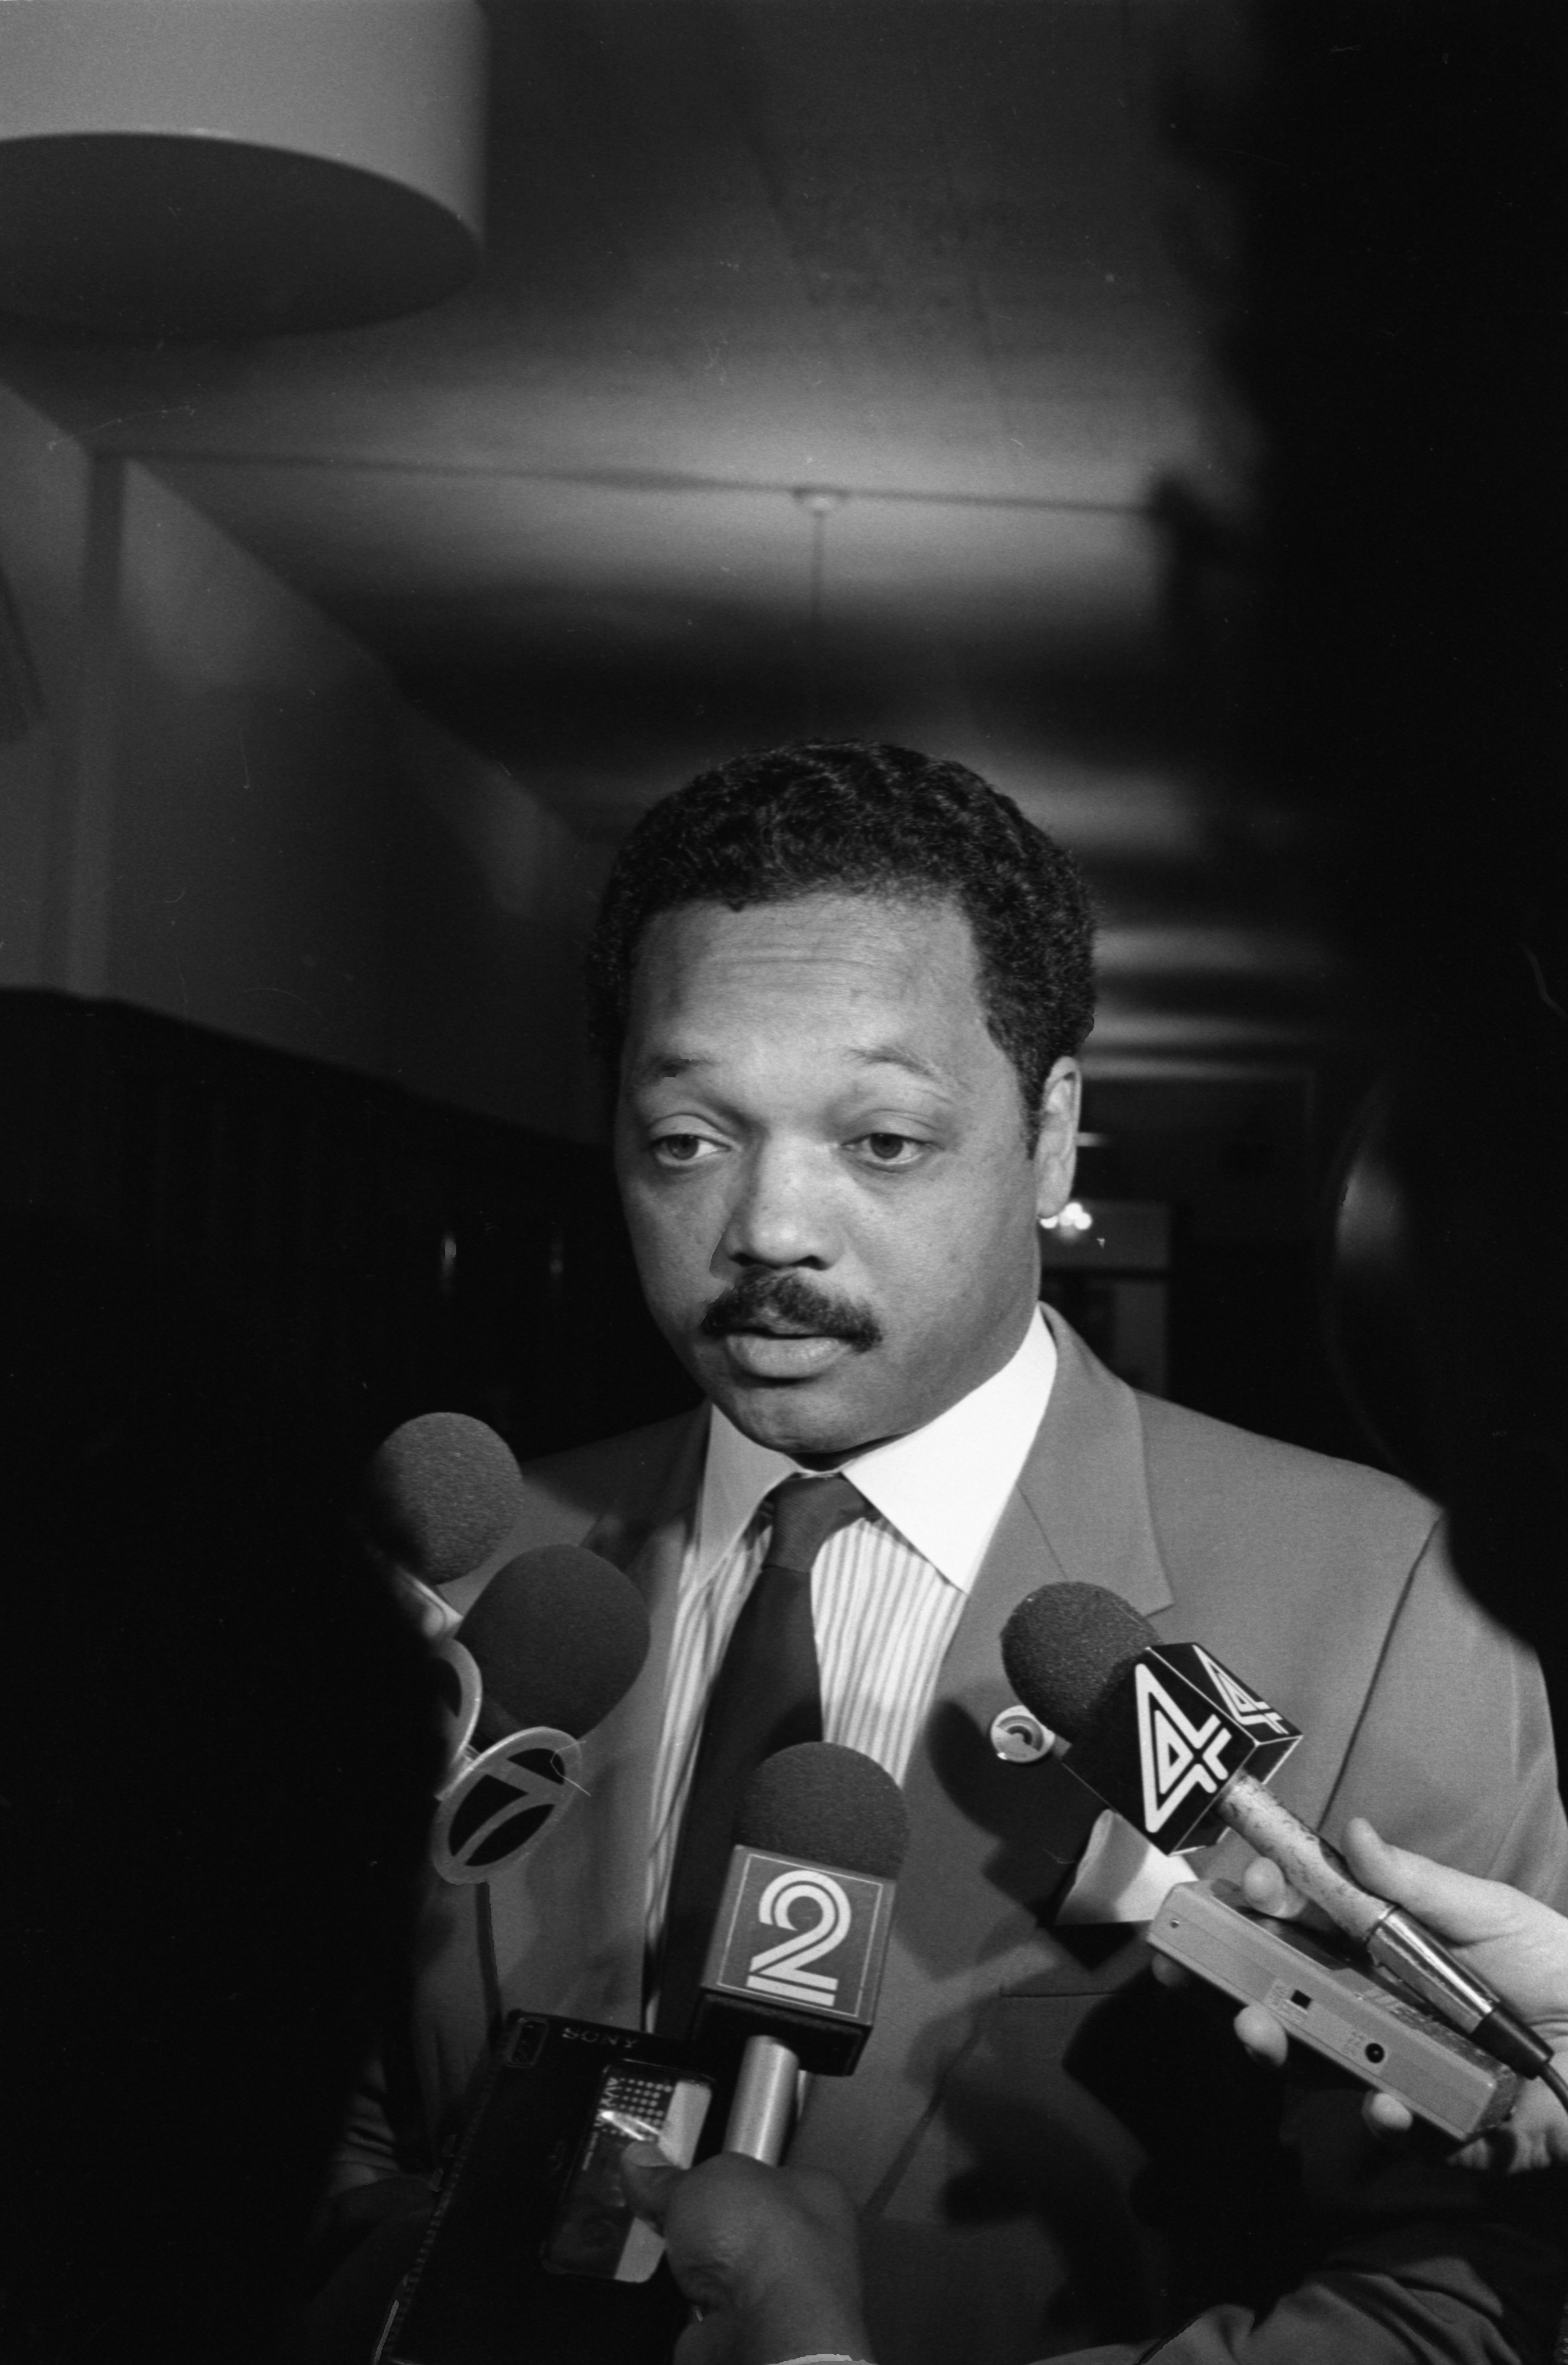 Rev. Jesse Jackson In Ann Arbor For Meeting With Black Action Movement Members Is Interviewed By Reporters, March 23, 1987 image